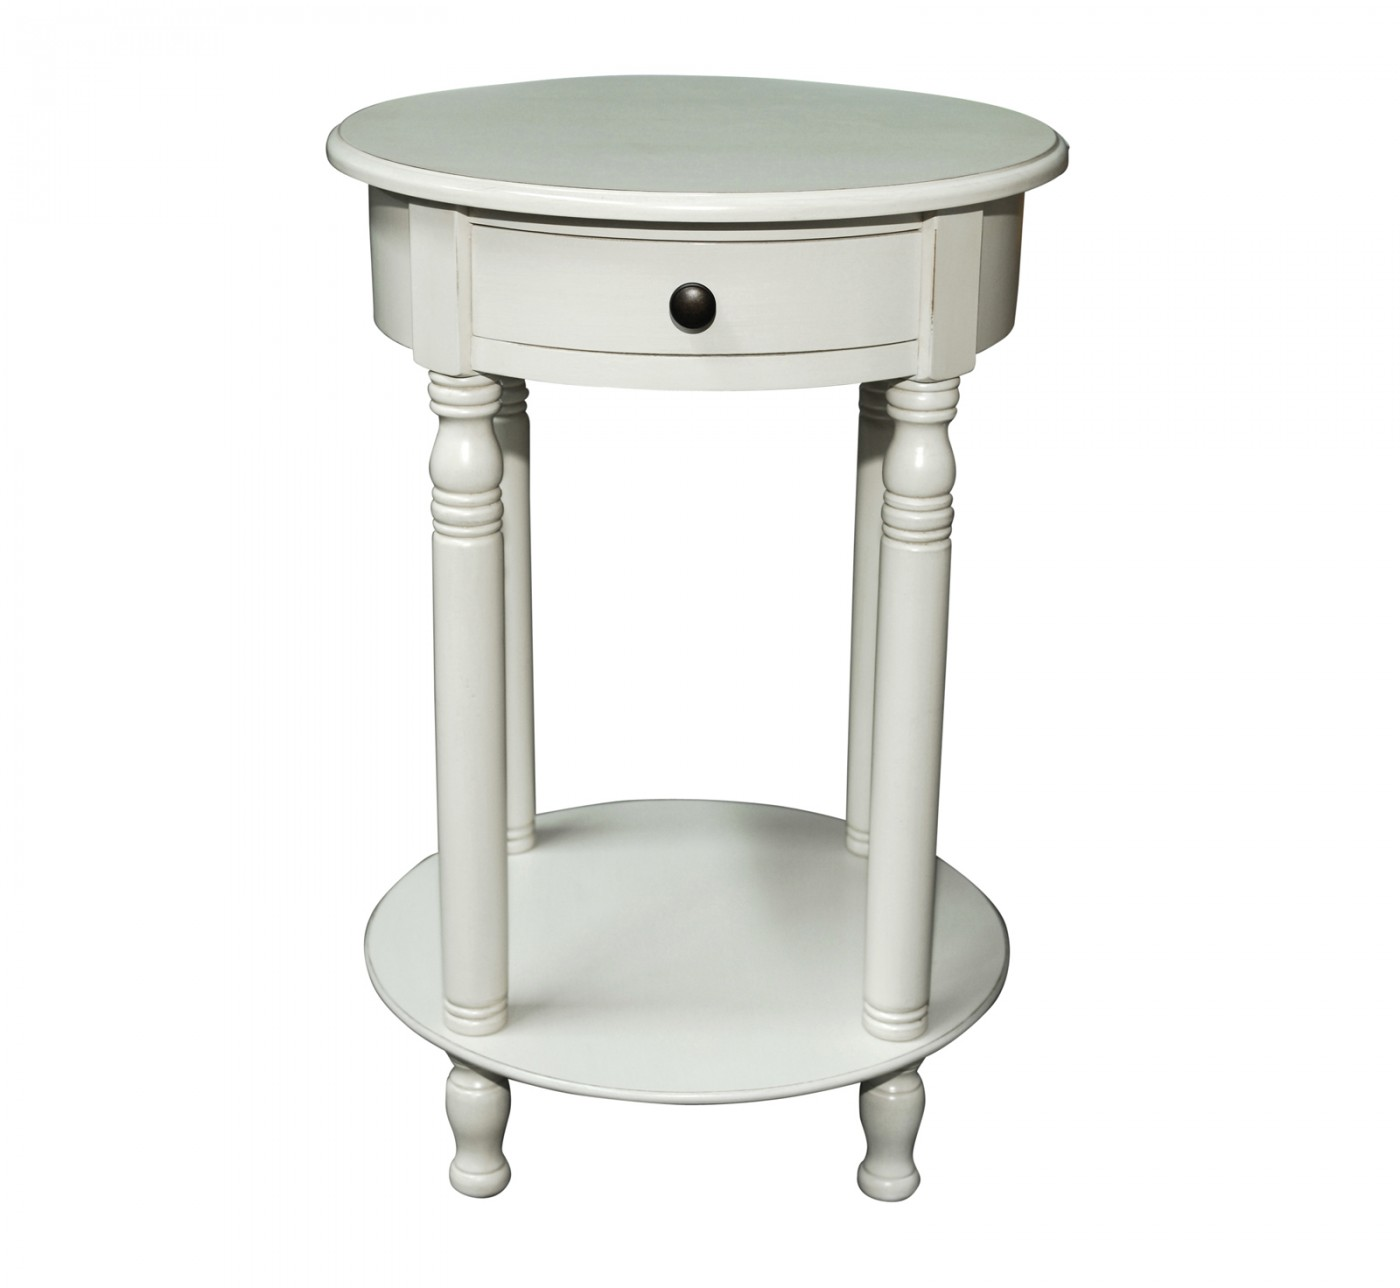 stunning white round end table solid wood material one drawer storage bottom shelf turned legs traditional style small accent with full size tables circular metal marble bedside